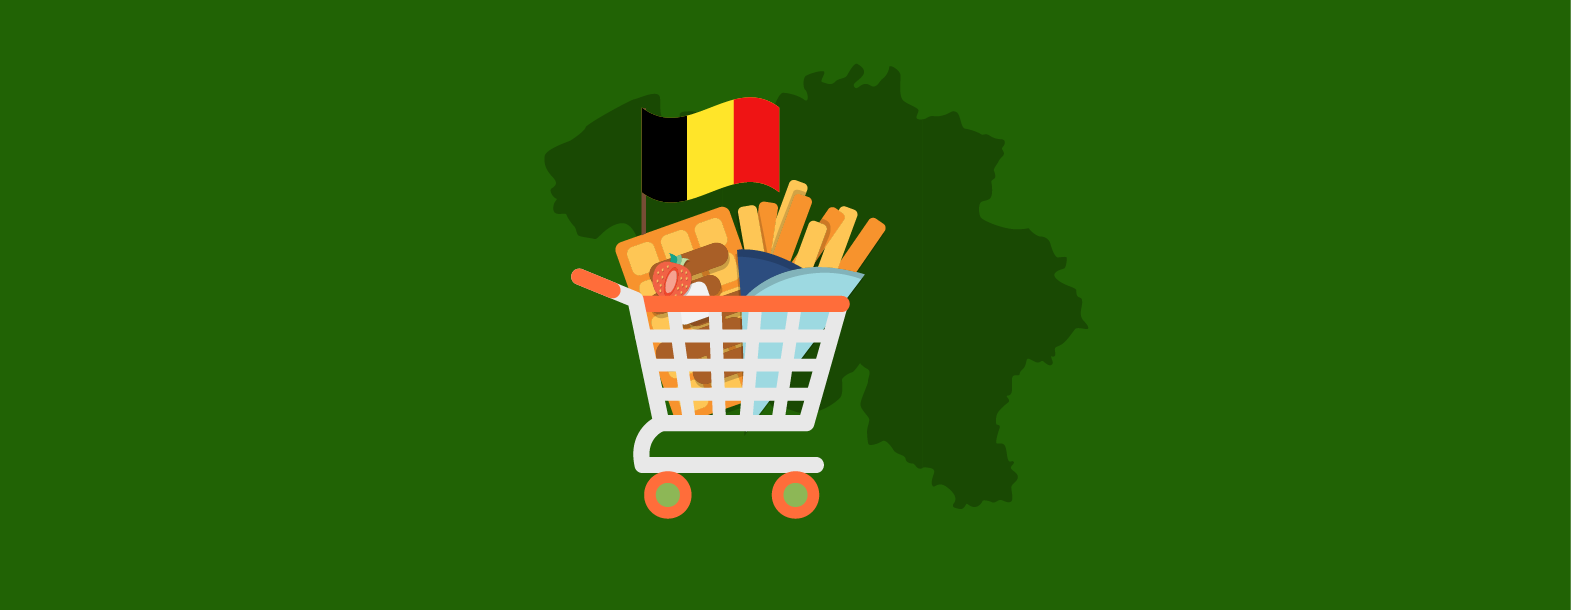 Boost your online sales. Next global ecommerce stop: Belgium